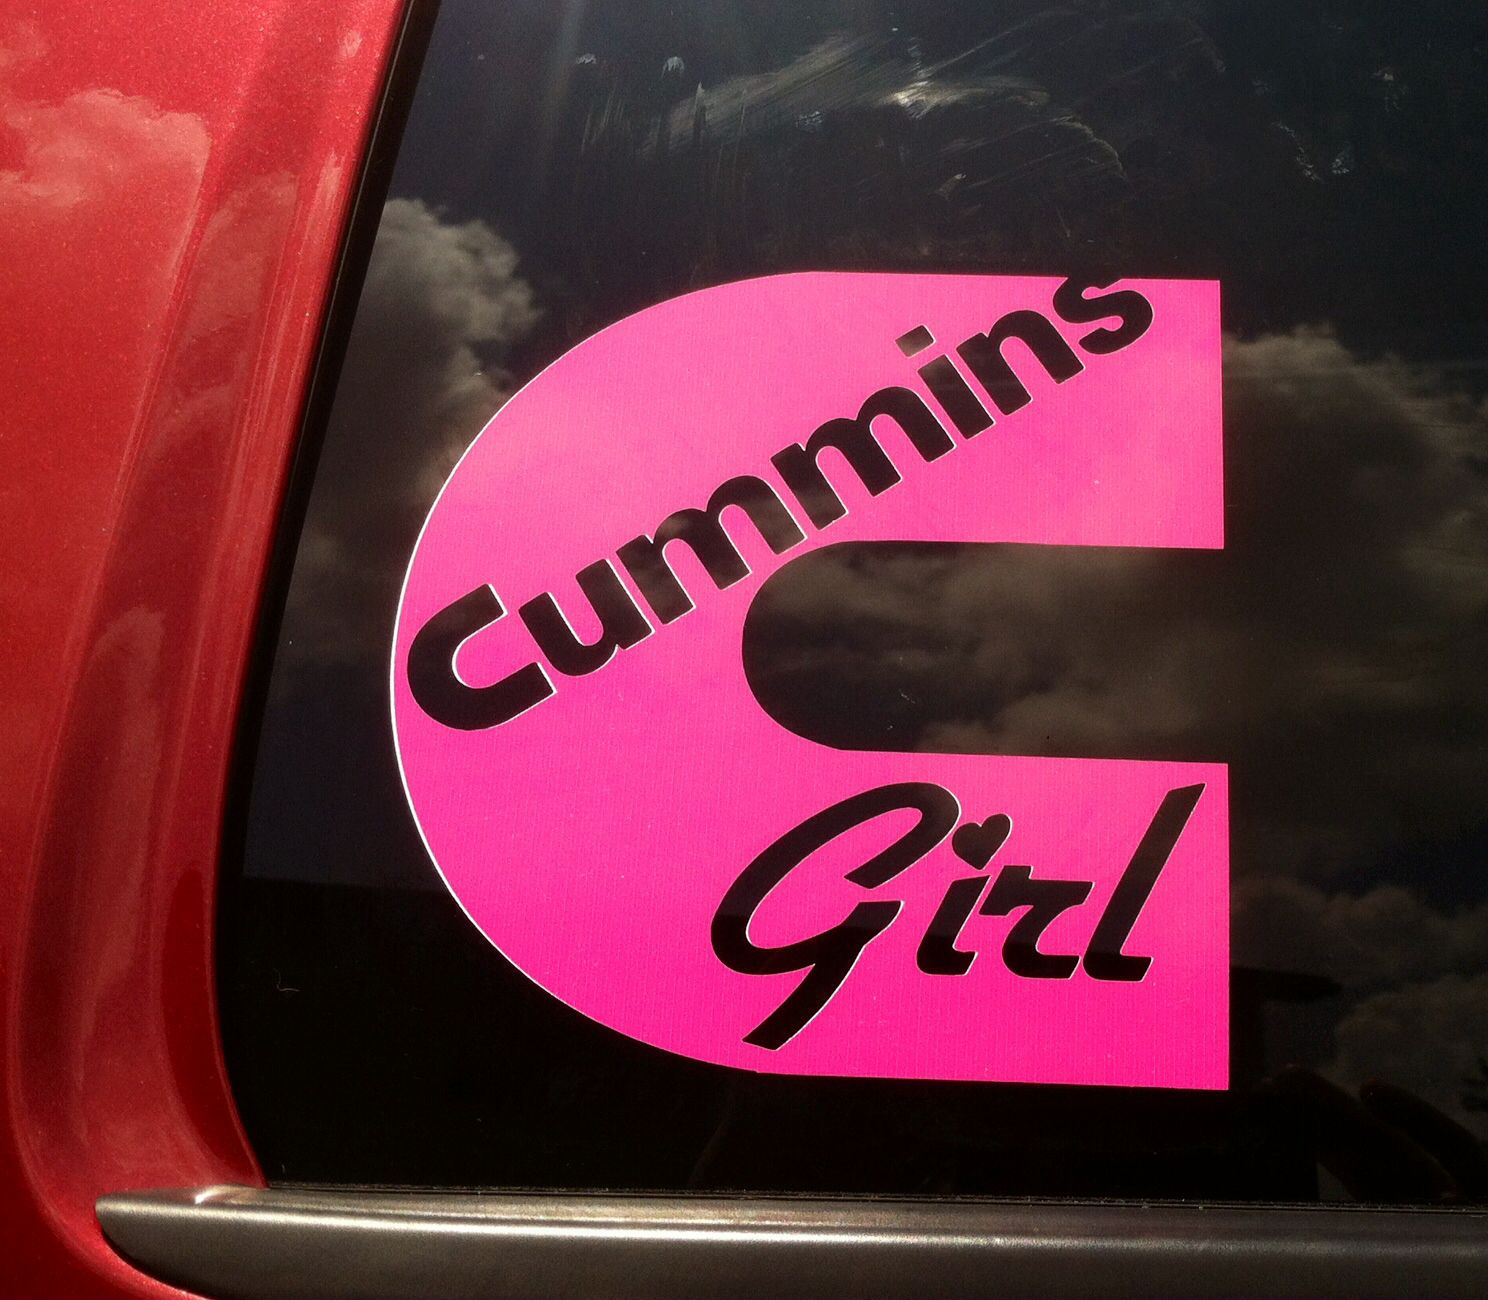 Cummins Girl Another New Sticker For My Cummins Cummins Girl